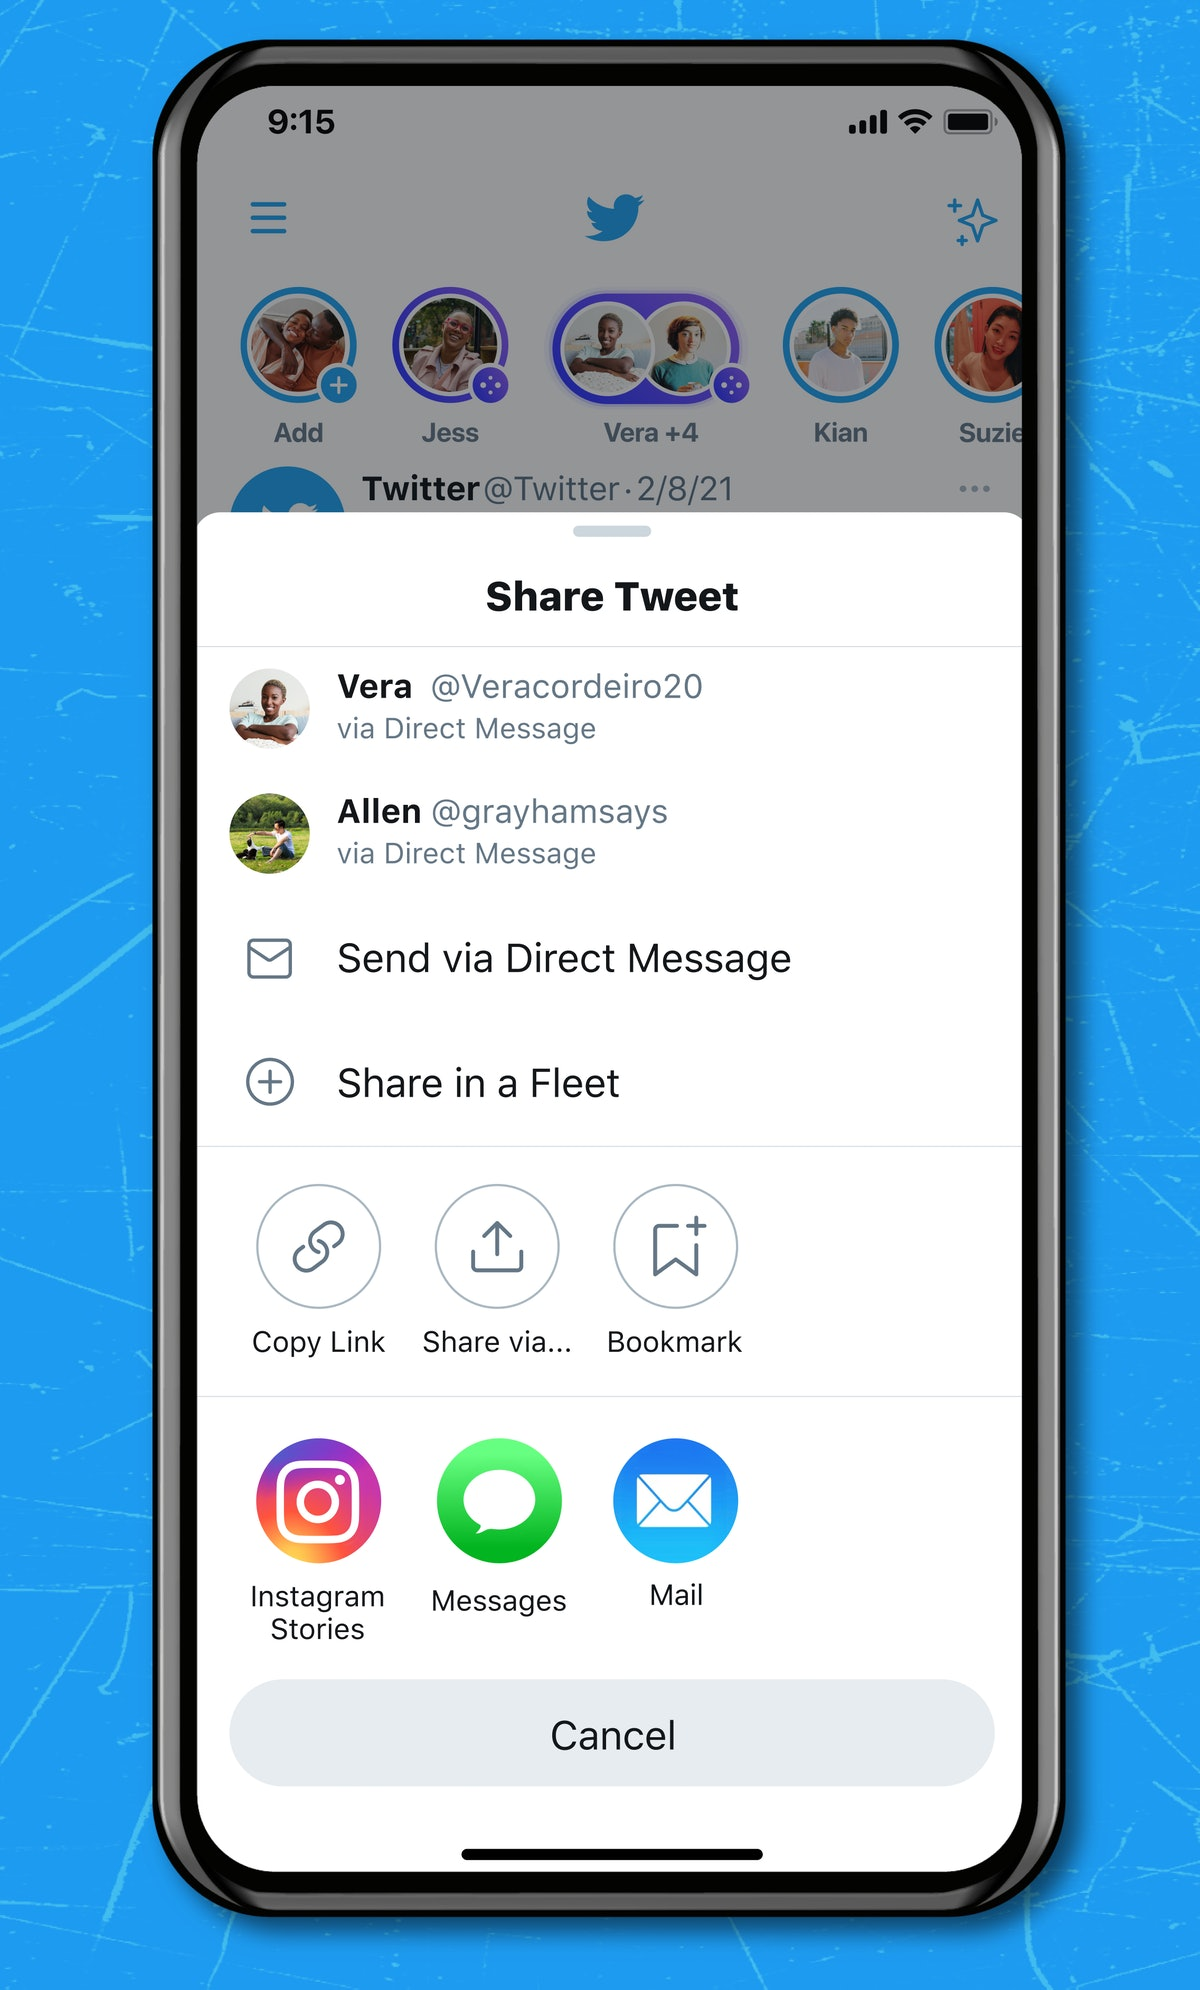 Here's how you can share tweets on Instagram straight from Twitter.